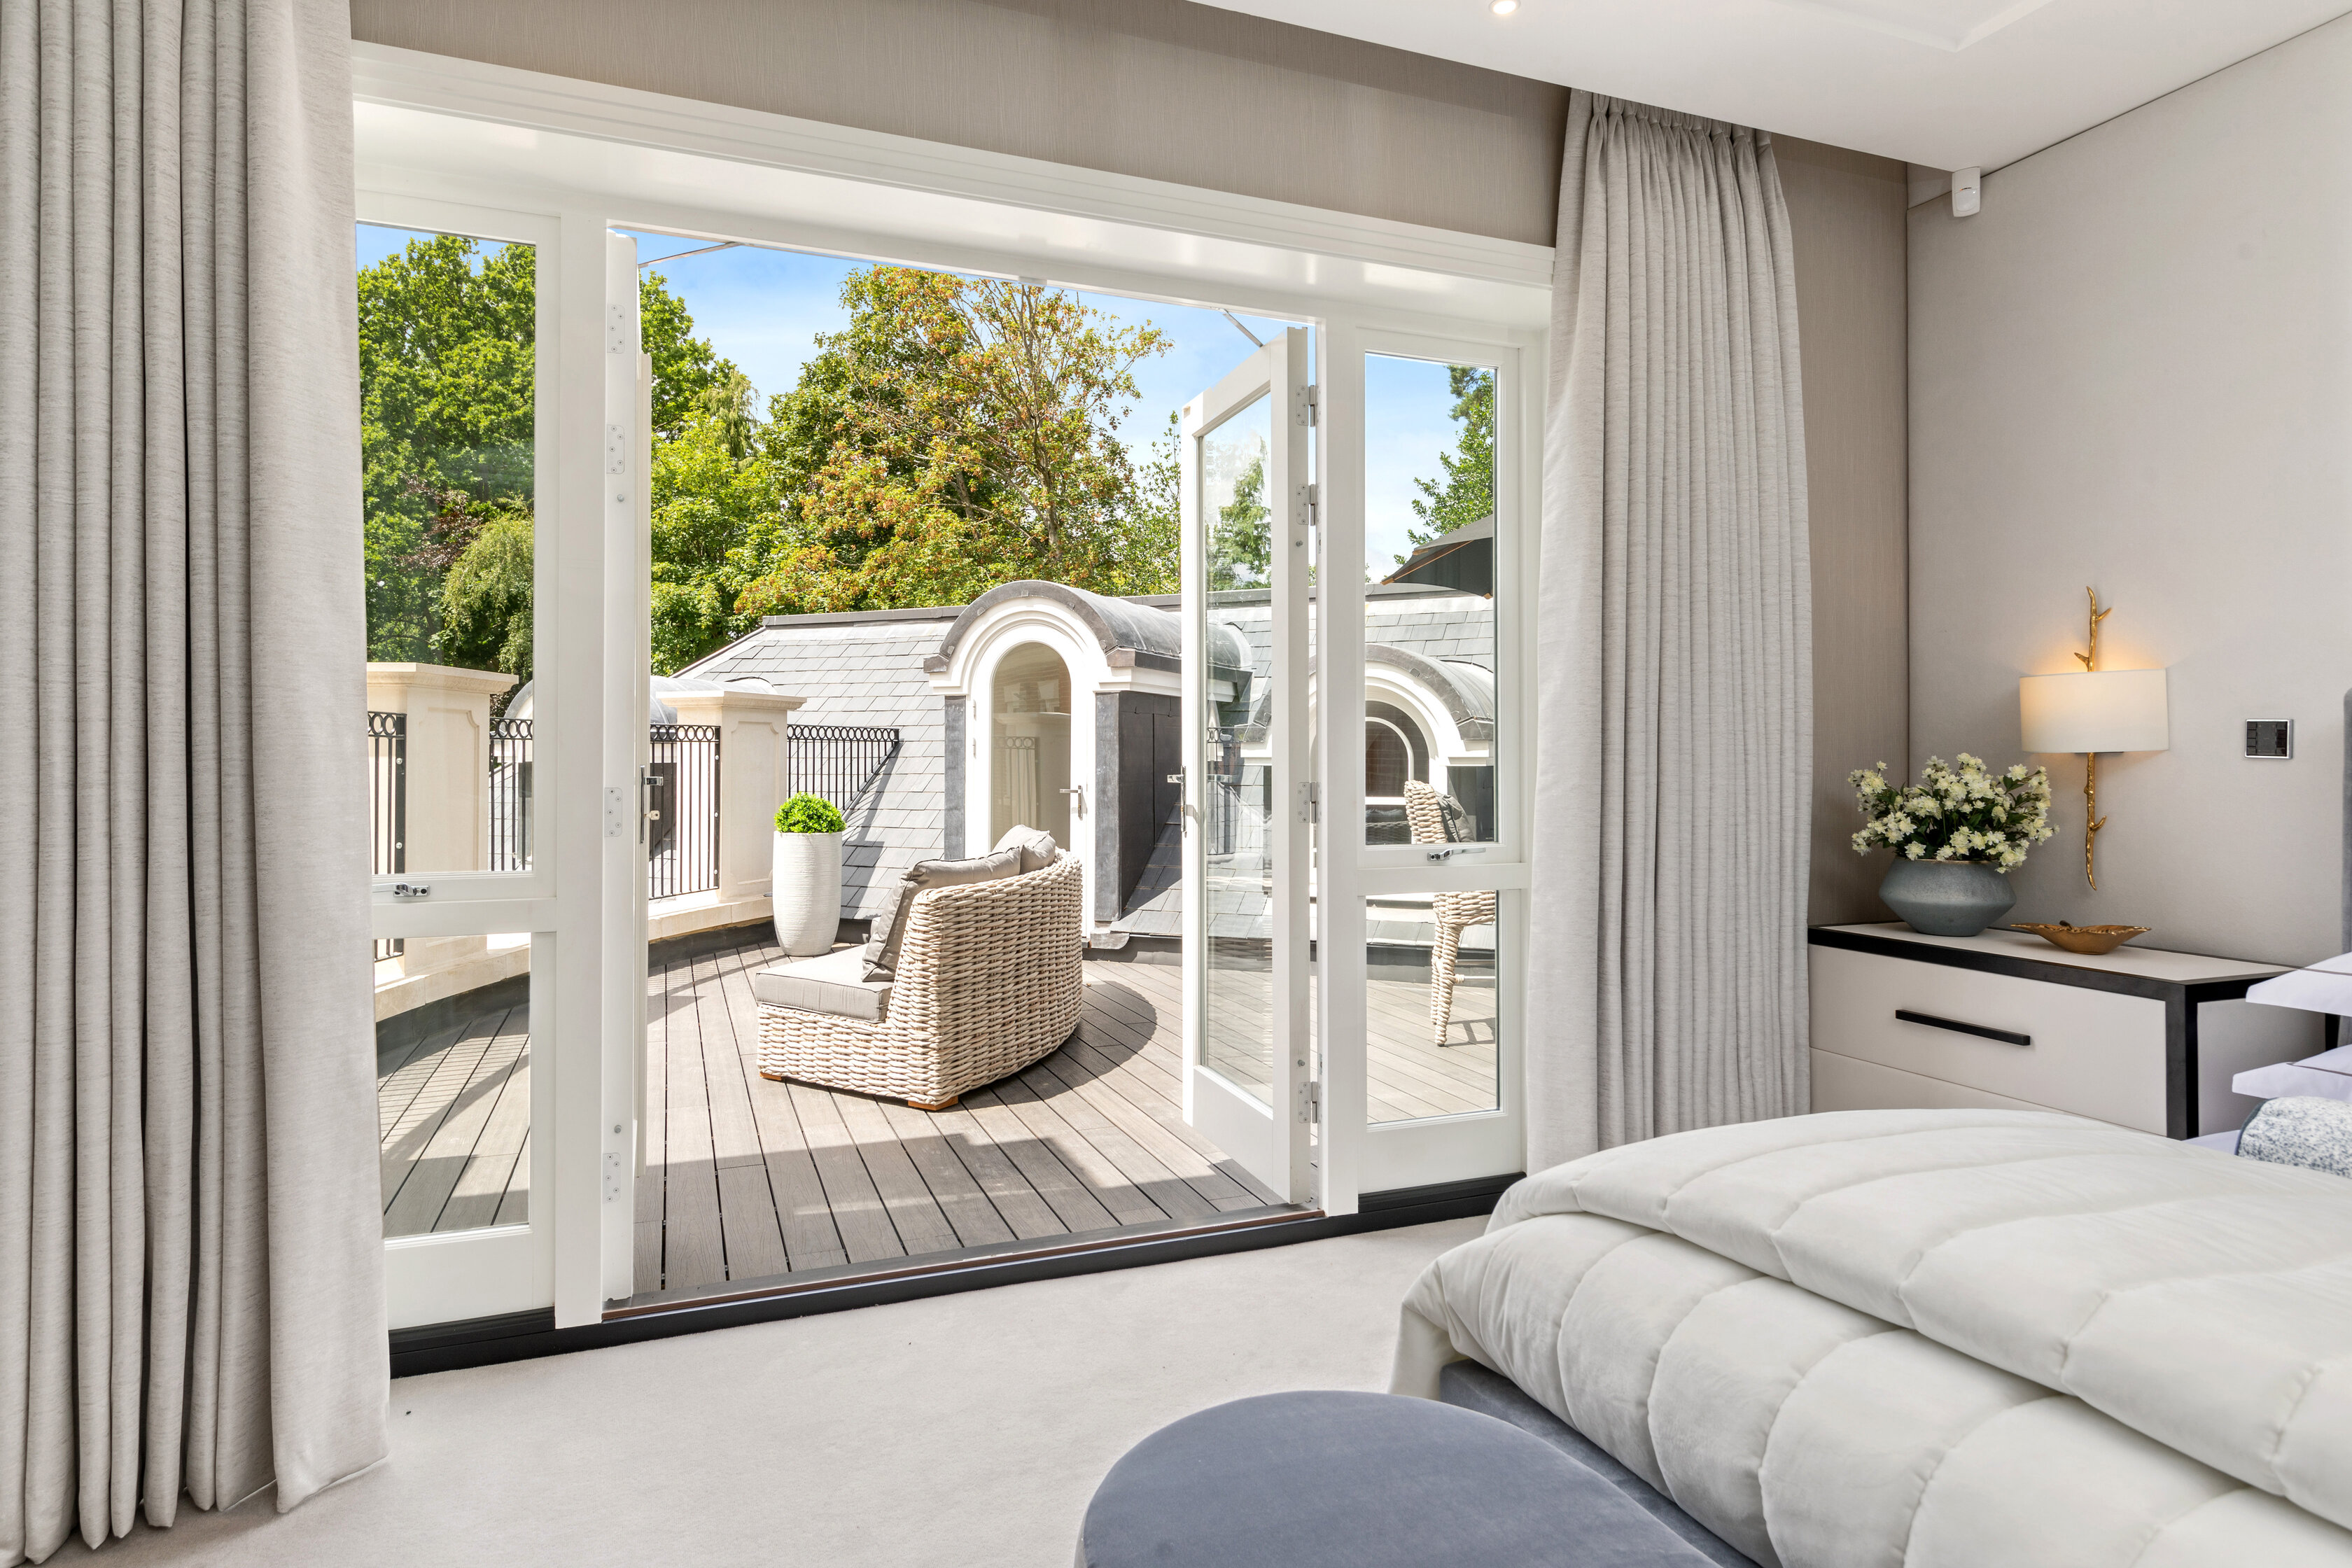 Master bedroom leading onto bright terrace